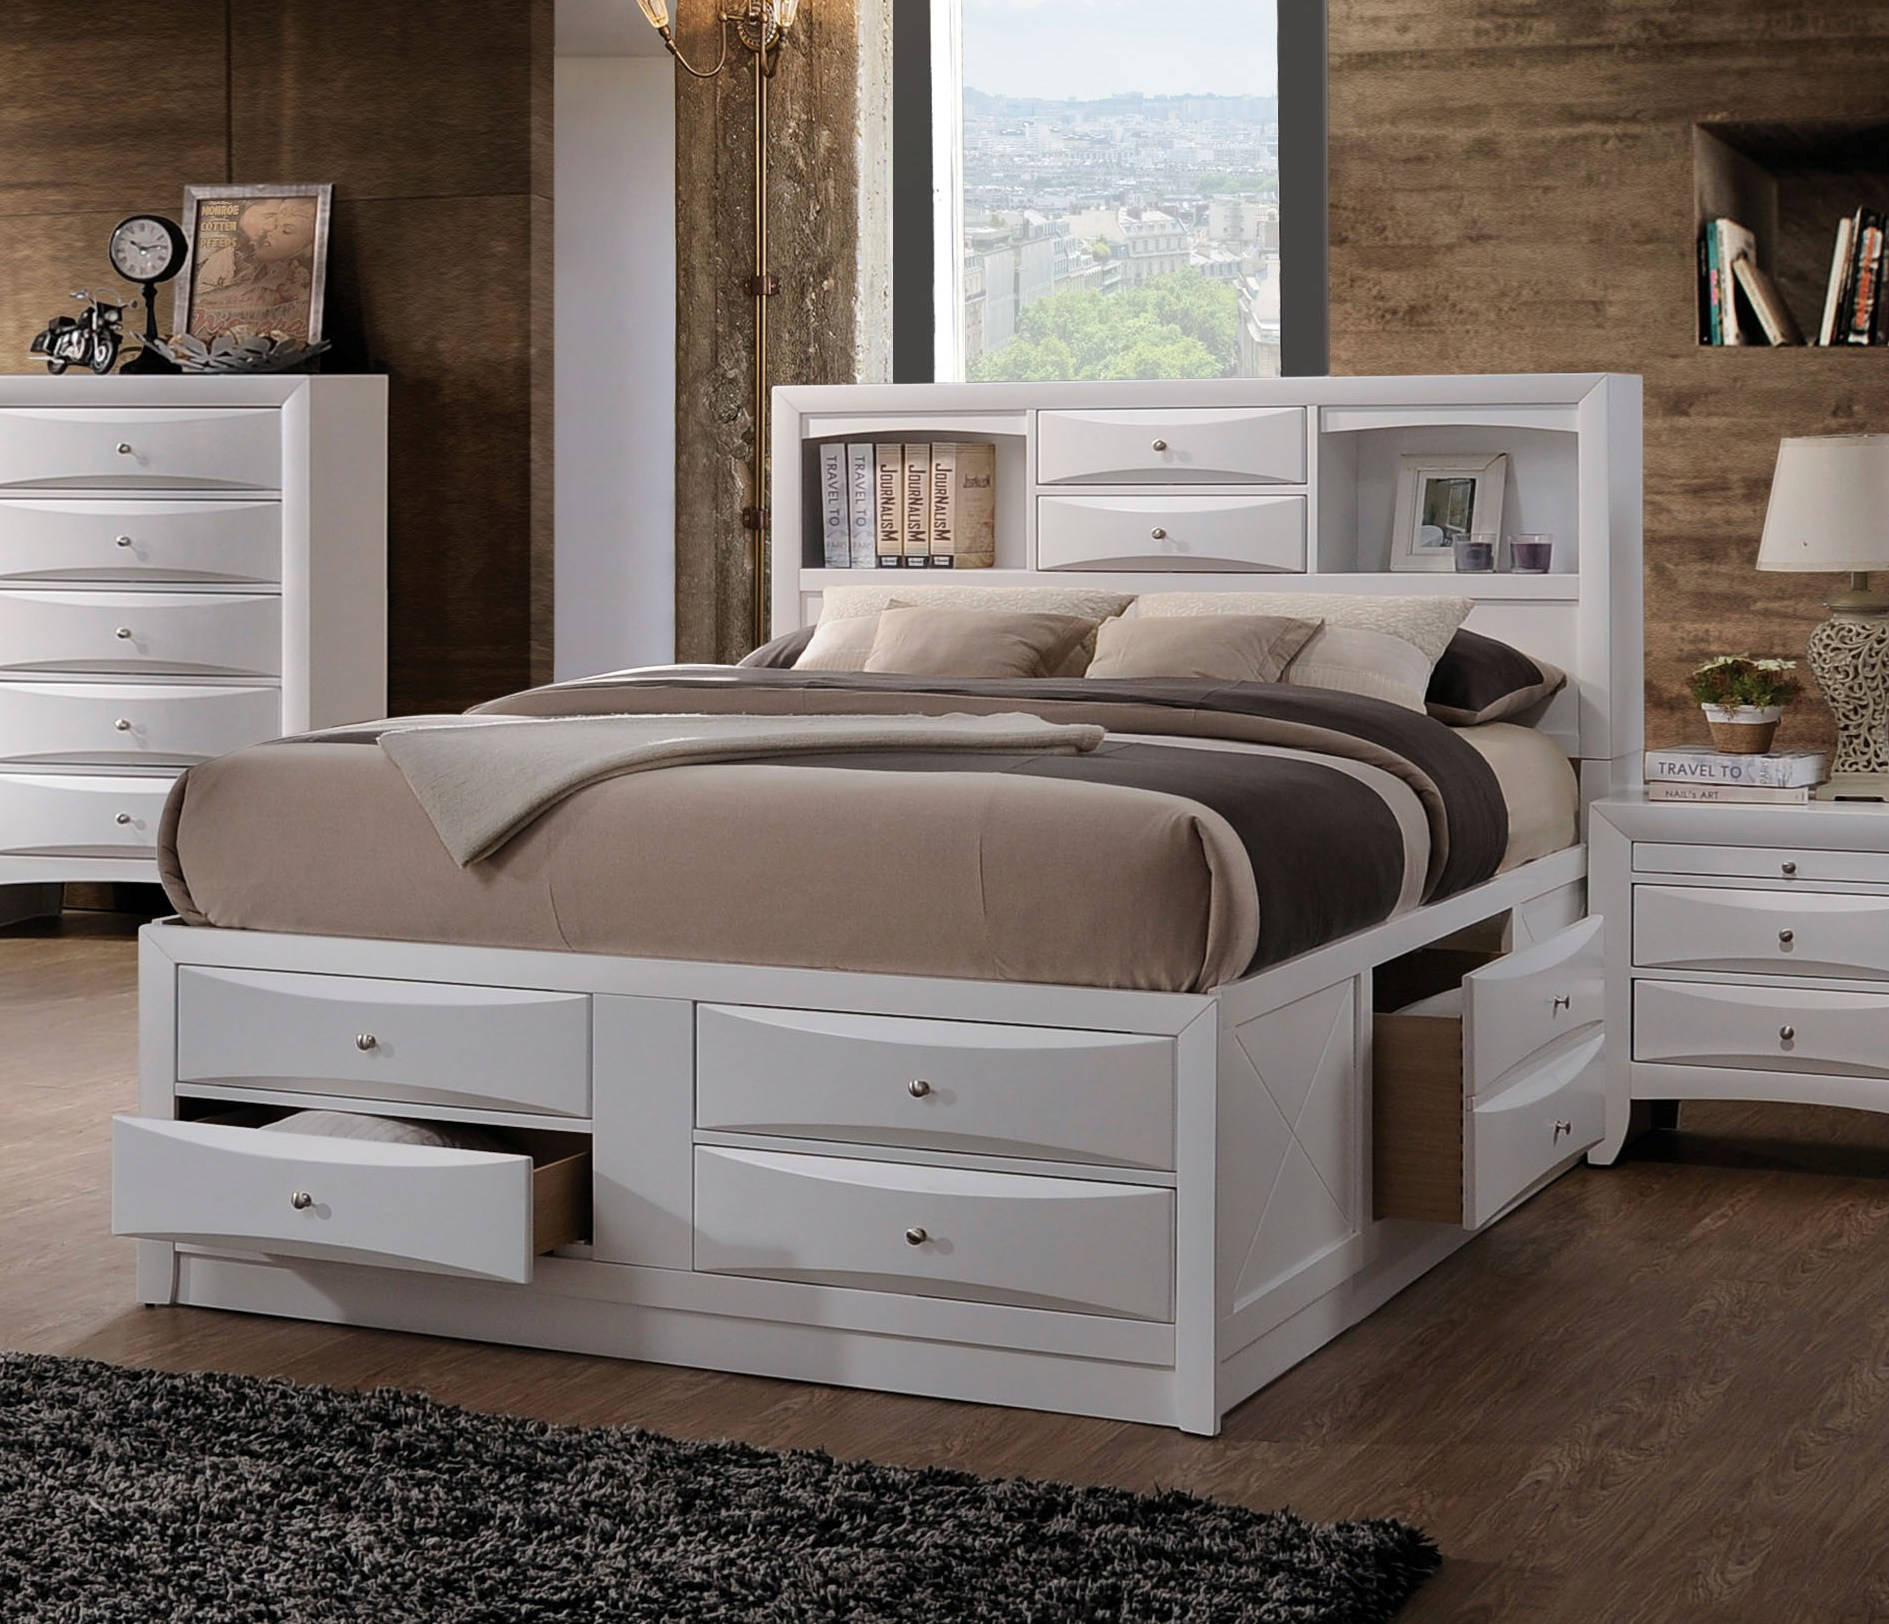 white full storage bed. Acme Furniture Ireland White Queen Storage Bed Click To Enlarge Full